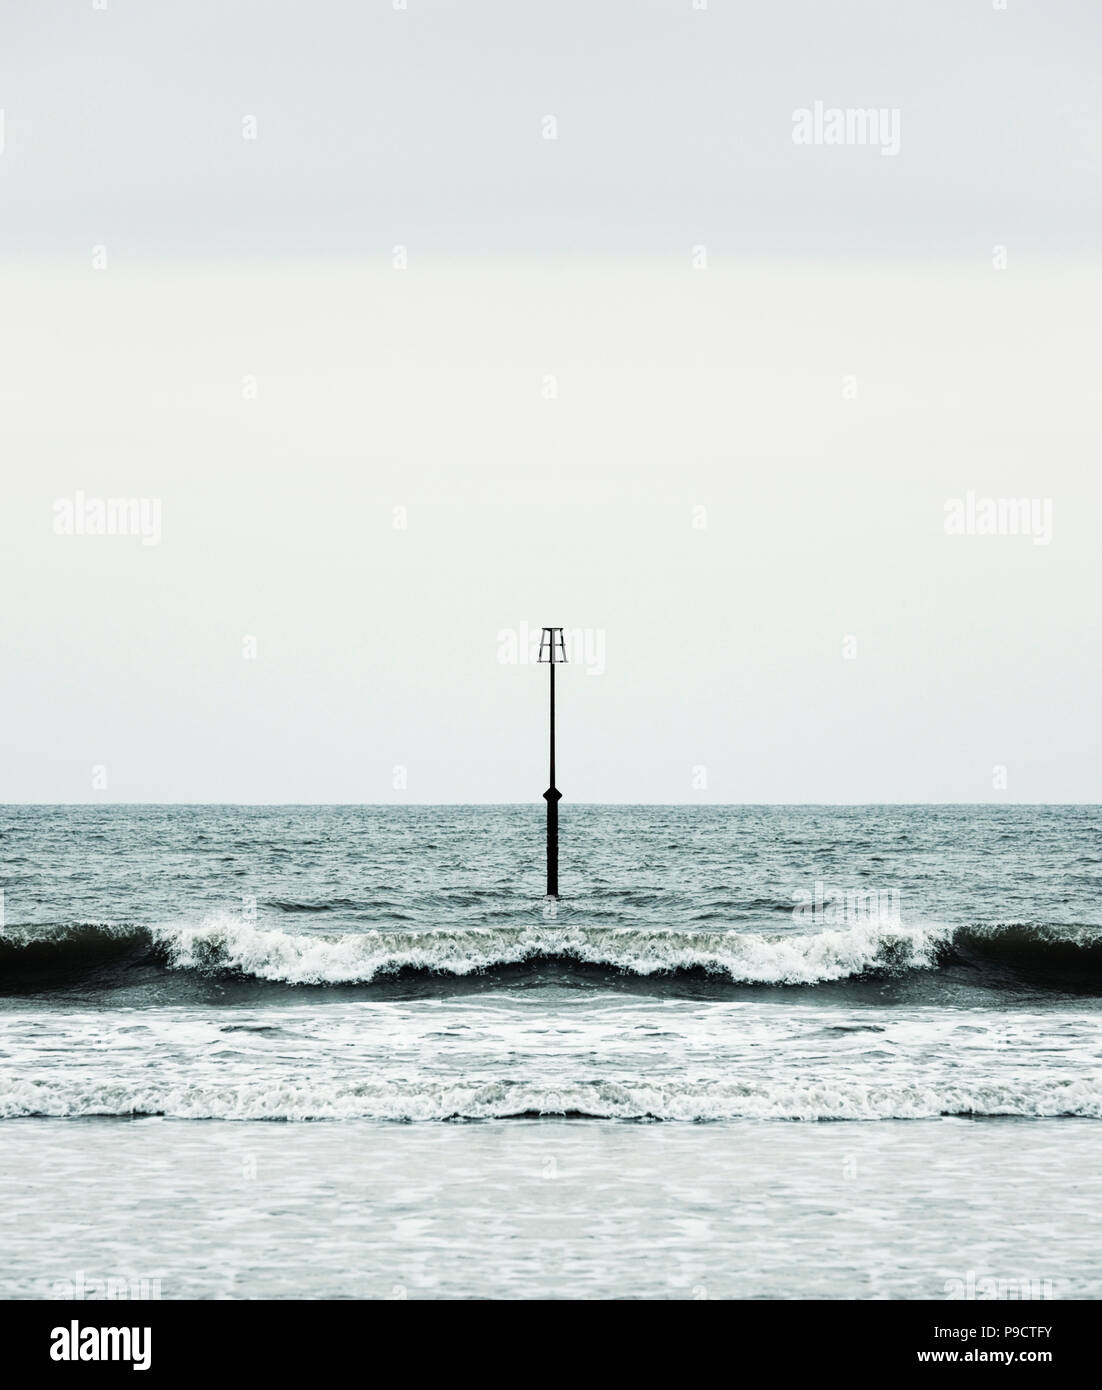 Waves and surf breaking onto a beach around a groyne beacon, England UK - symmetry concept - Stock Image